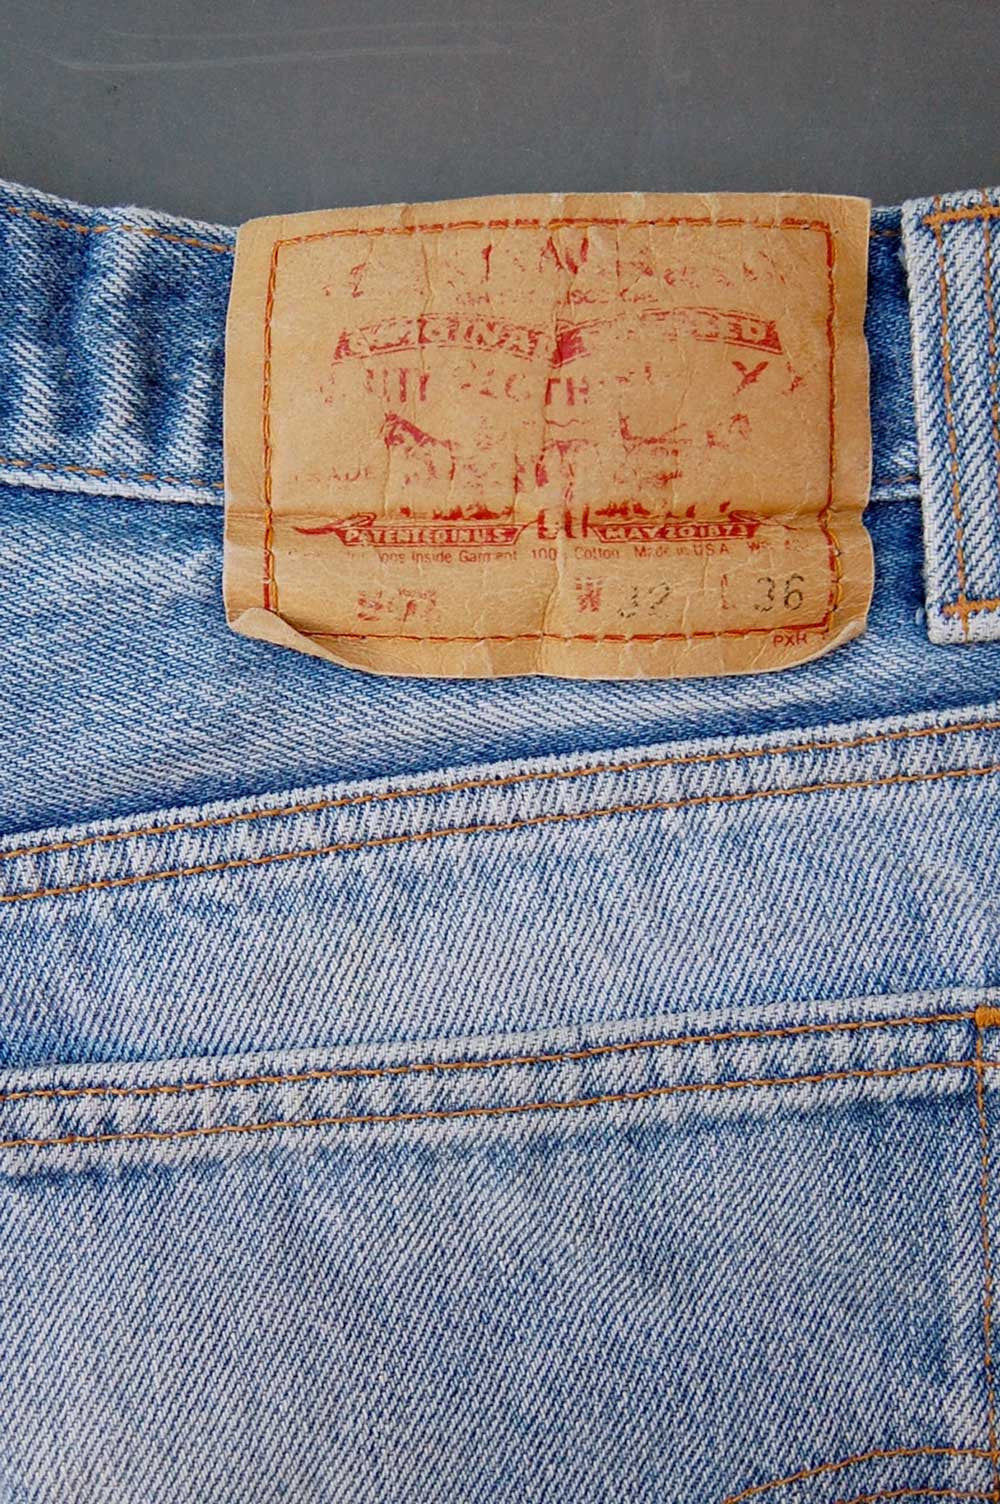 Vintage Levi's 501 USA Whiskered Cutoff Denim Shorts